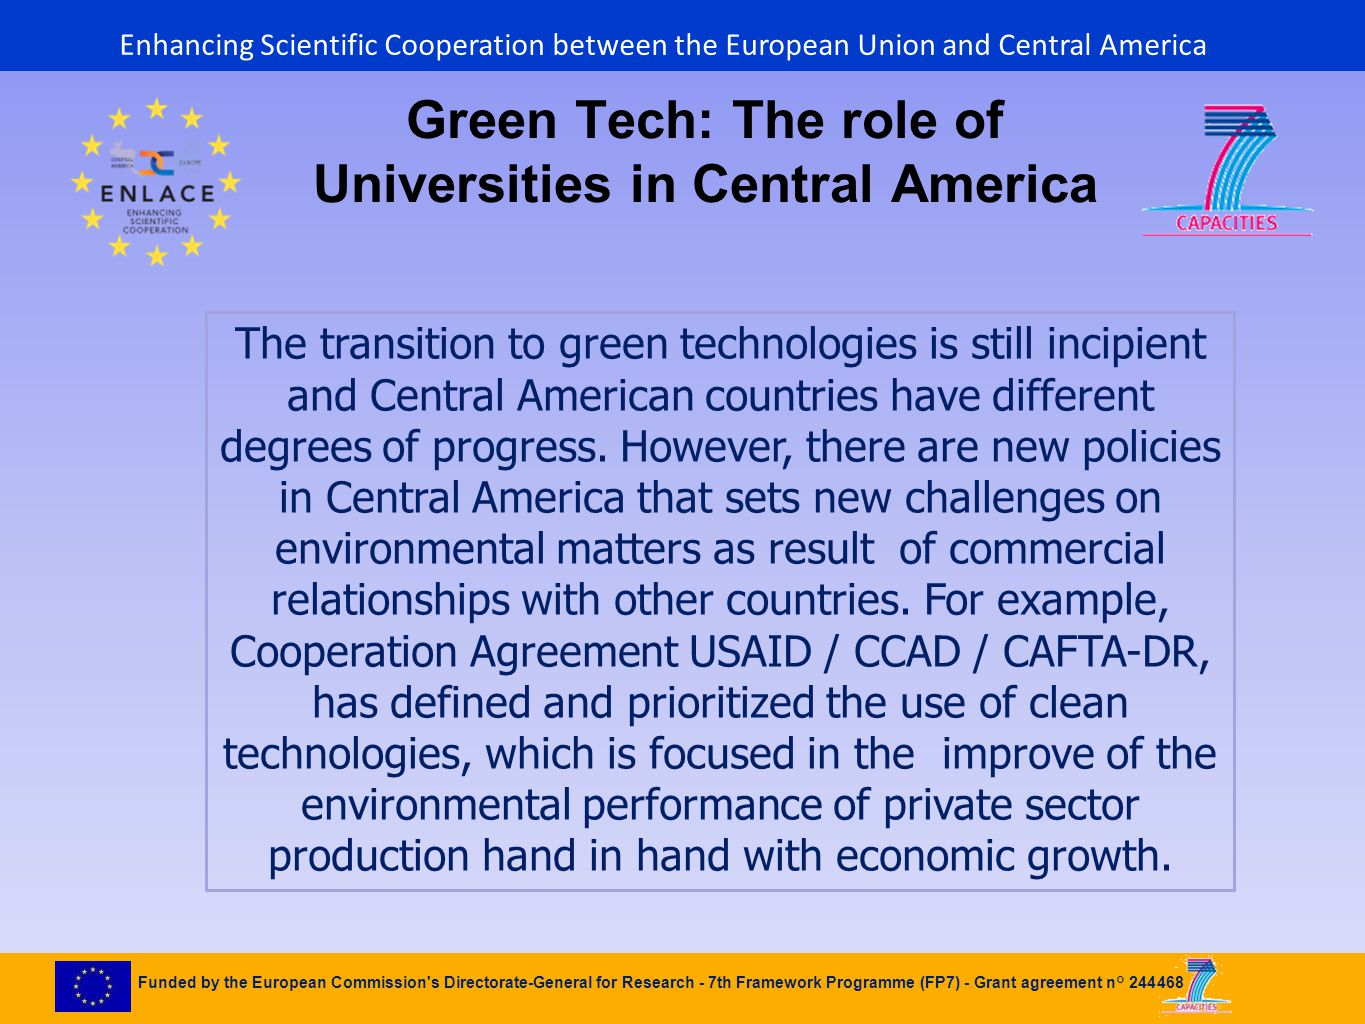 Funded by the European Commission s Directorate-General for Research - 7th Framework Programme (FP7) - Grant agreement n° 244468 Green Tech: The role of Universities in Central America The transition to green technologies is still incipient and Central American countries have different degrees of progress.